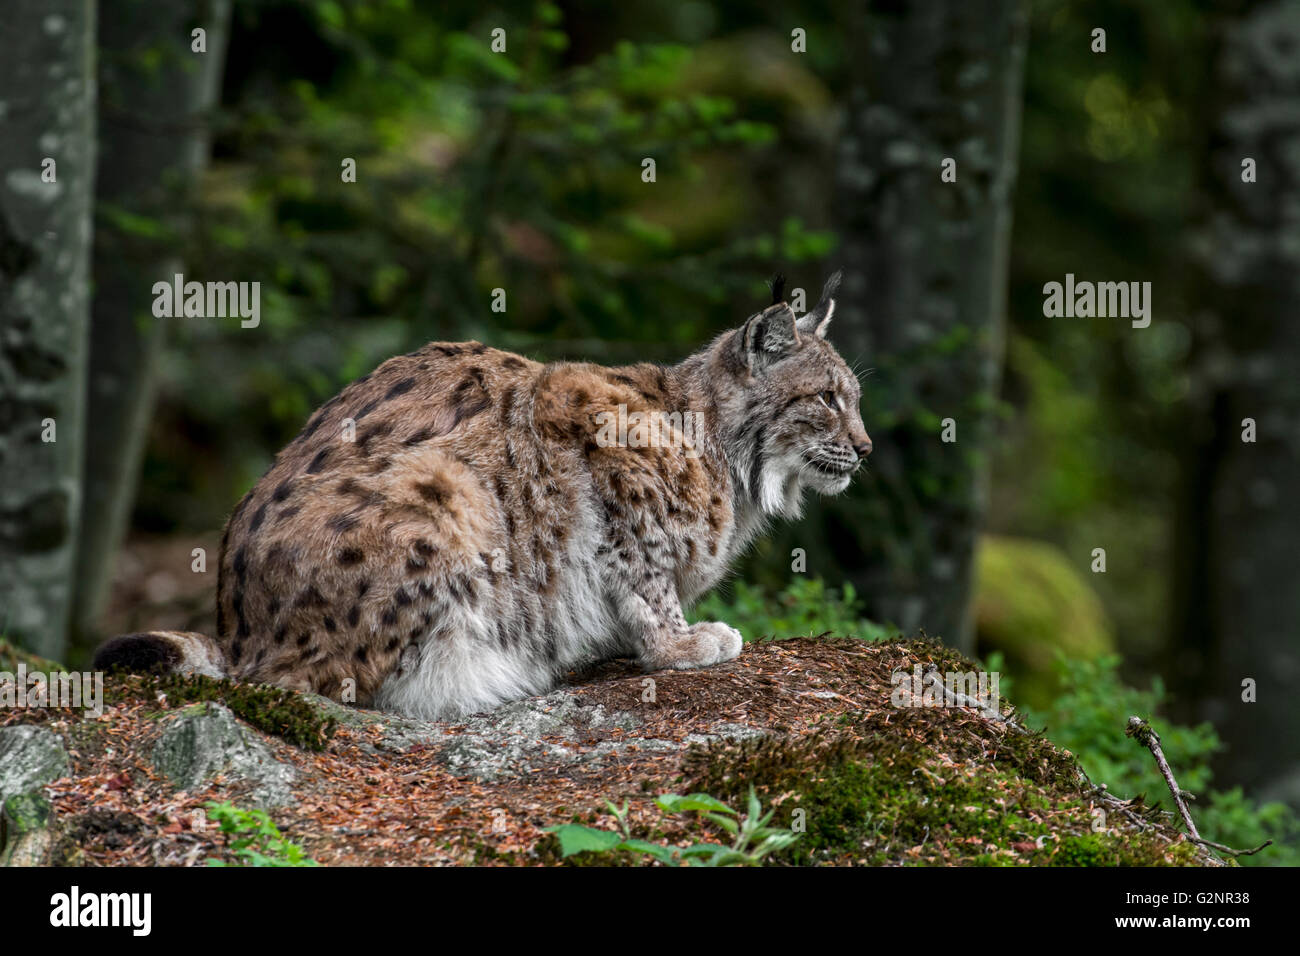 Crouched Eurasian lynx (Lynx lynx) looking for prey in forest - Stock Image